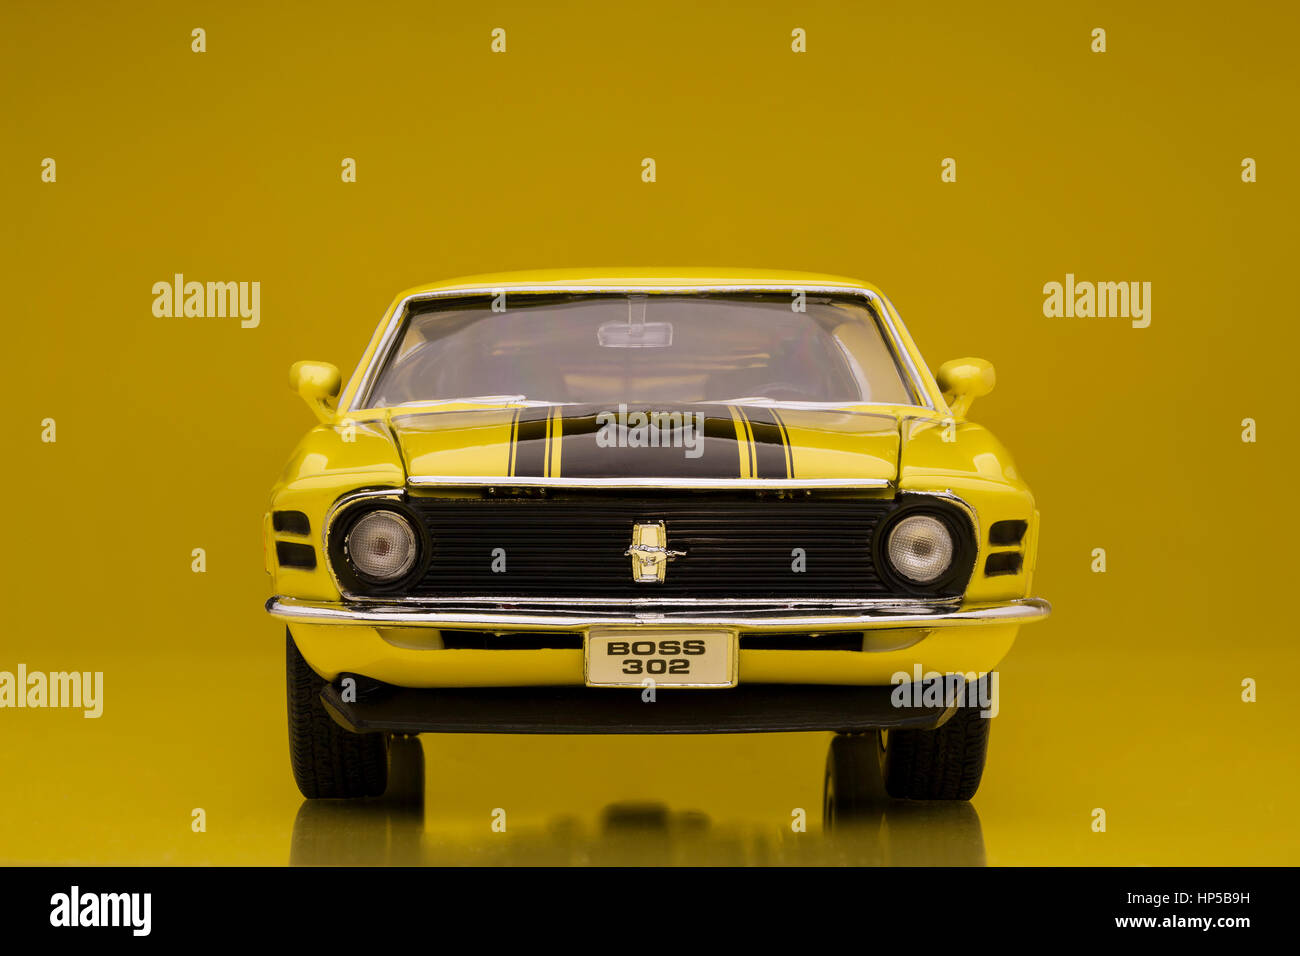 1970 Ford Mustang Boss 302 Welly Die Cast Model Car Stock Photo